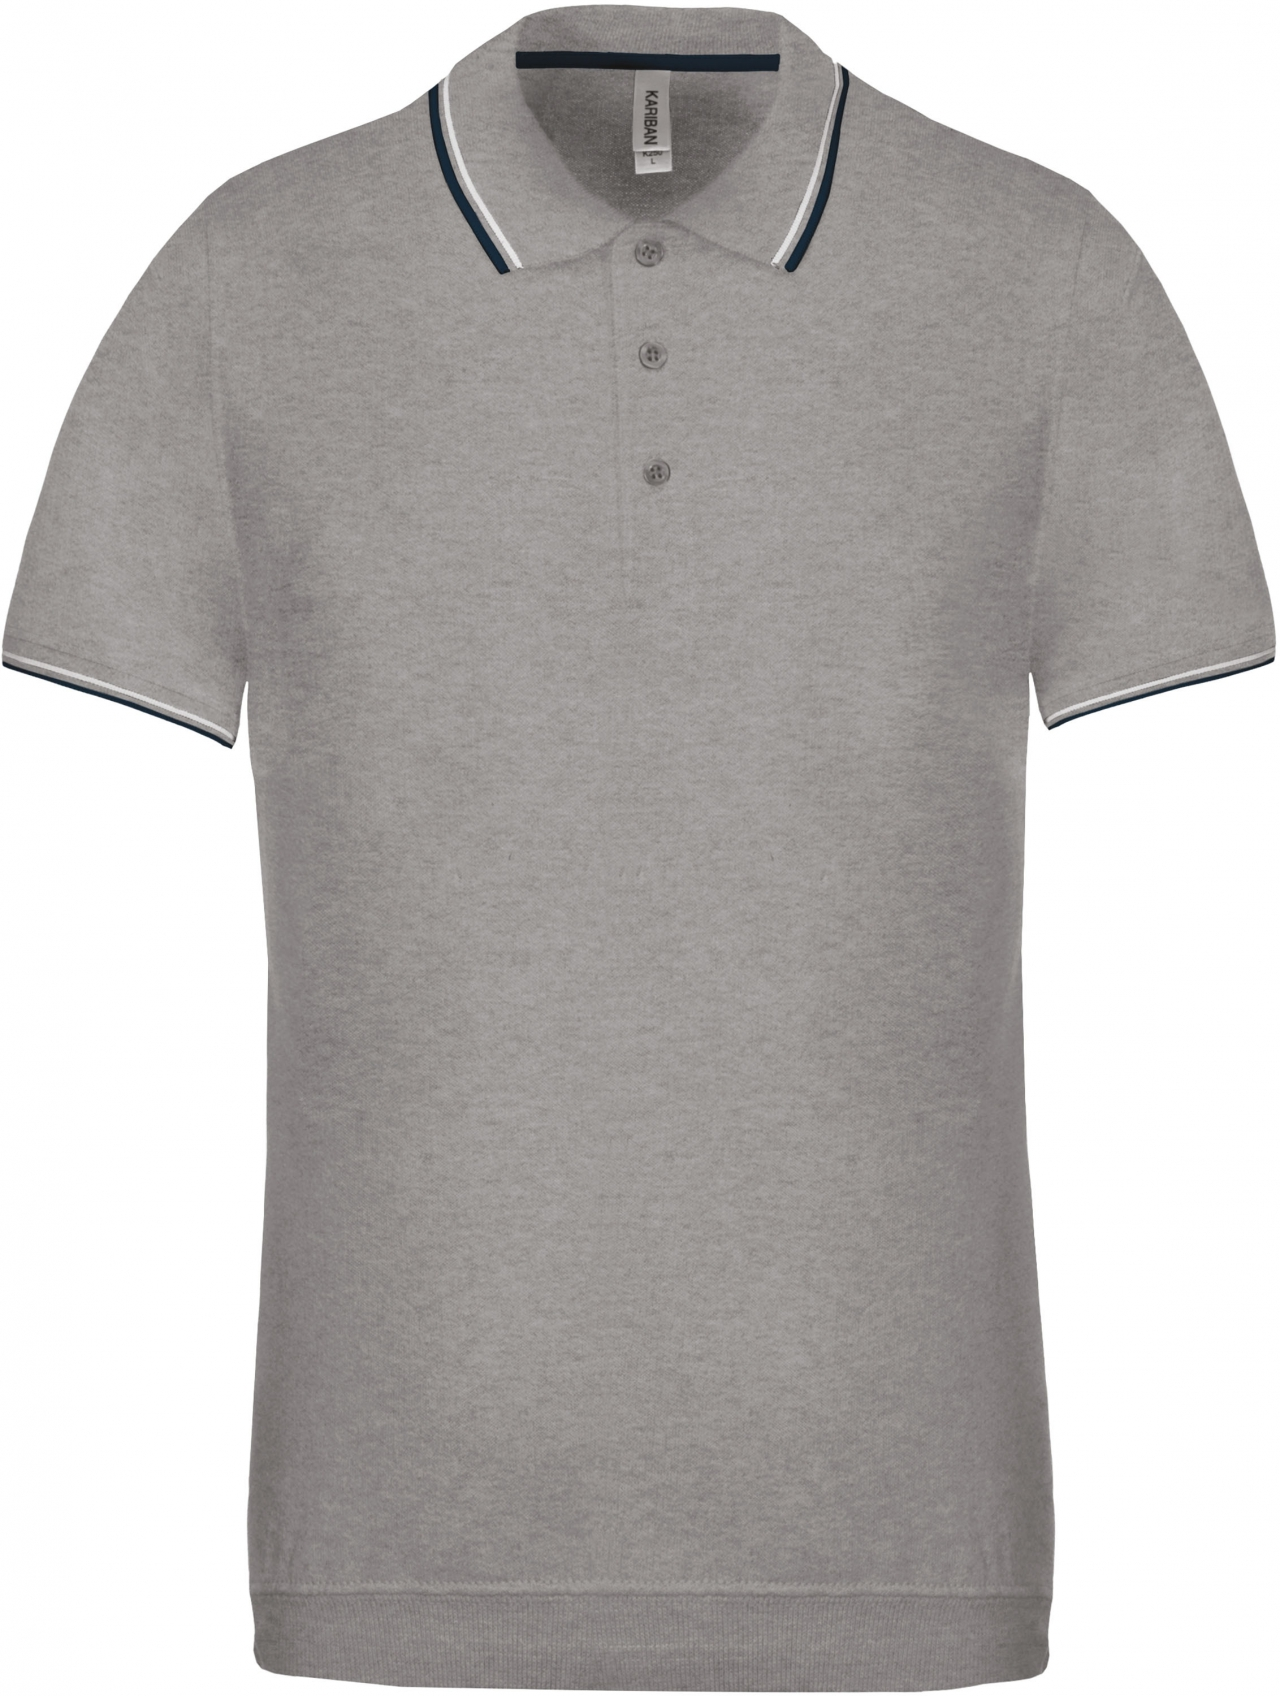 Oxford Grey / Navy / White